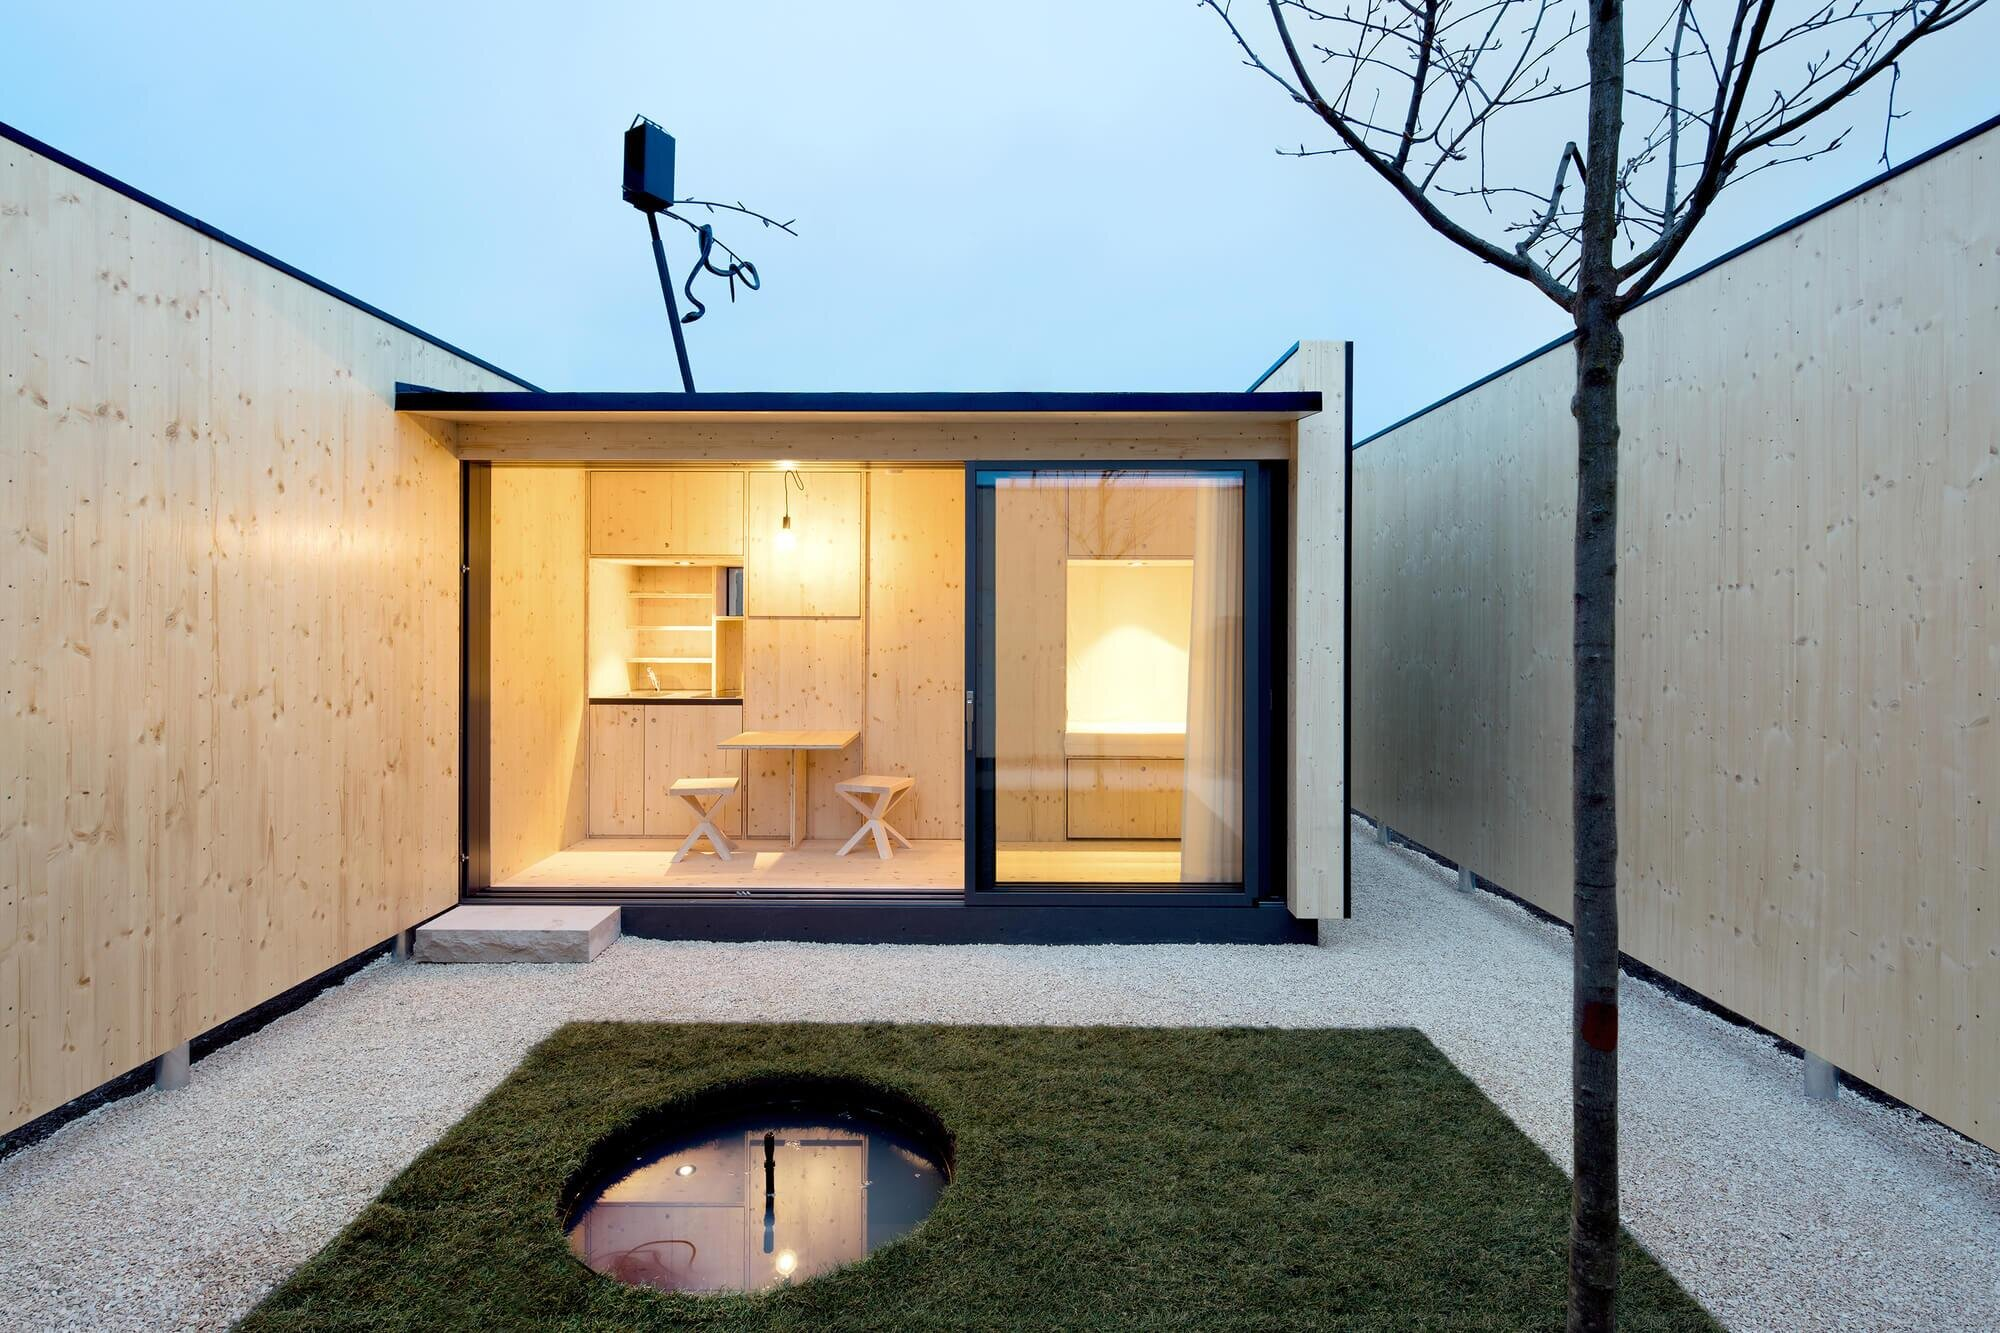 Micro Courtyard House A 75 Square Foot Tiny House Built On A Traffic Island In Germany